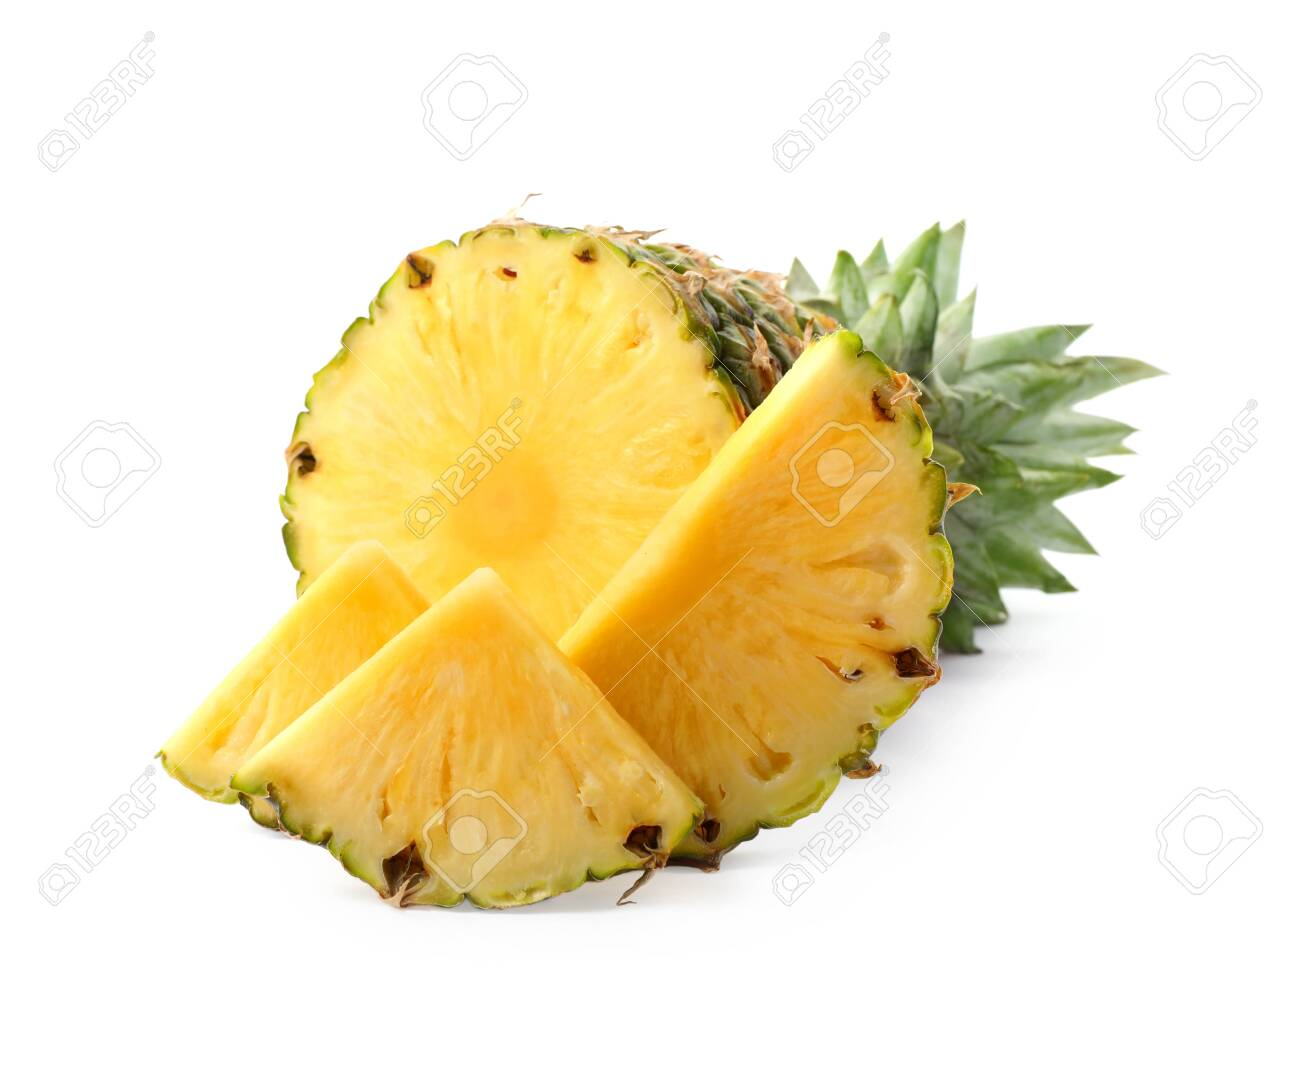 Tasty raw pineapple with slices on white background - 129993319